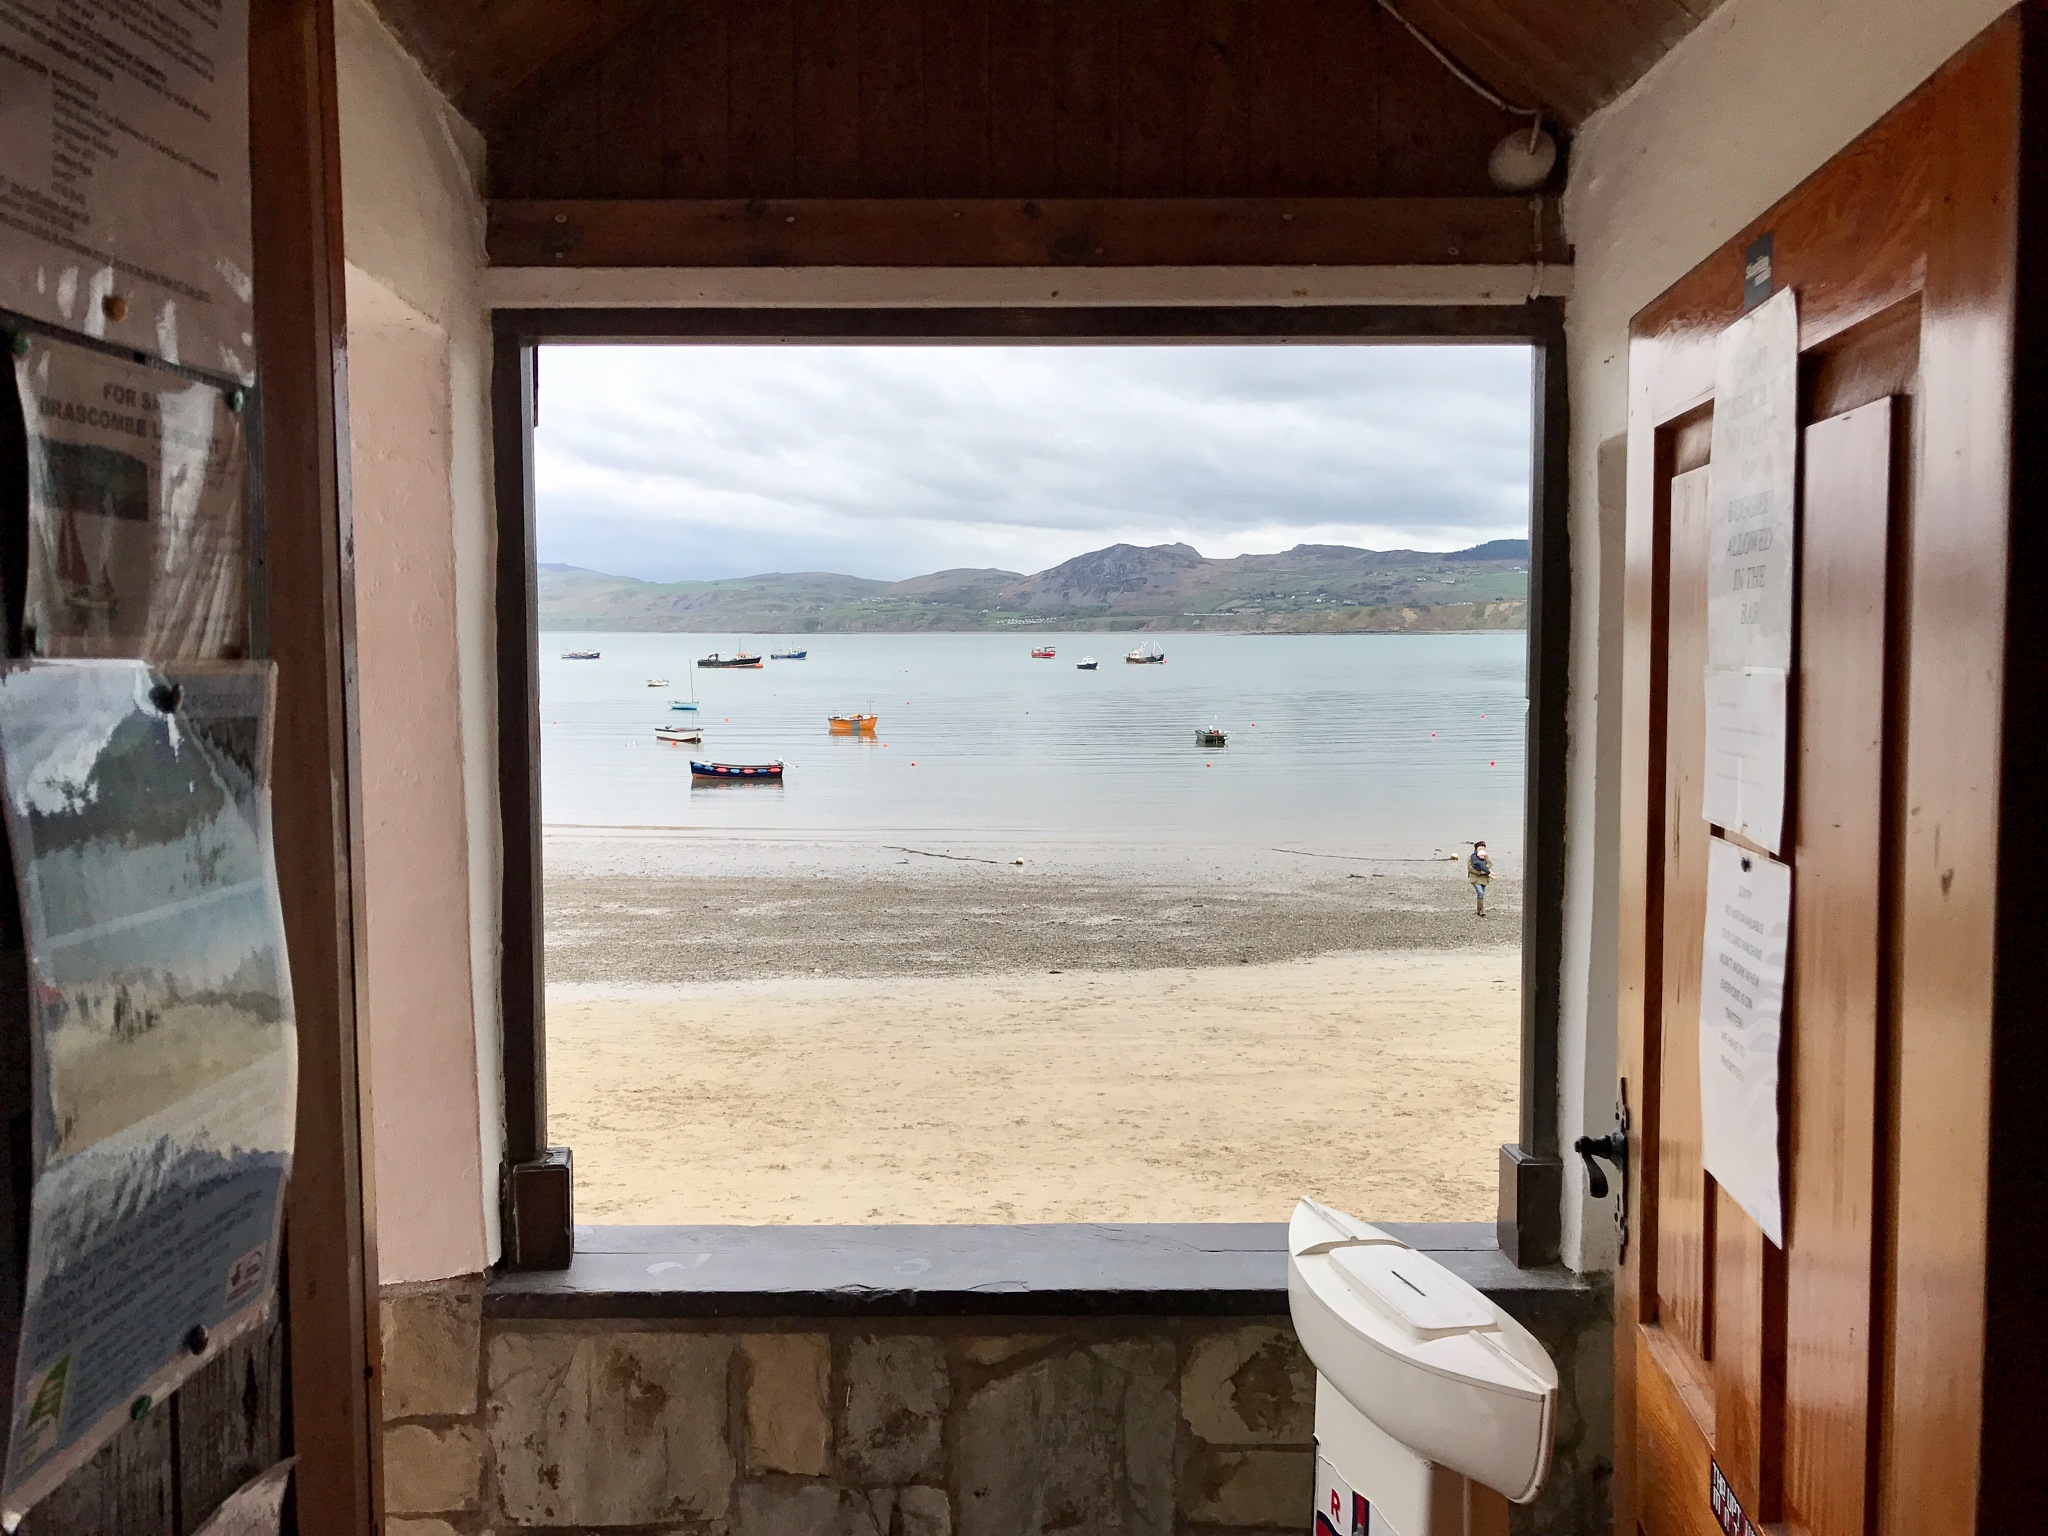 Room with a view by Richie Gray